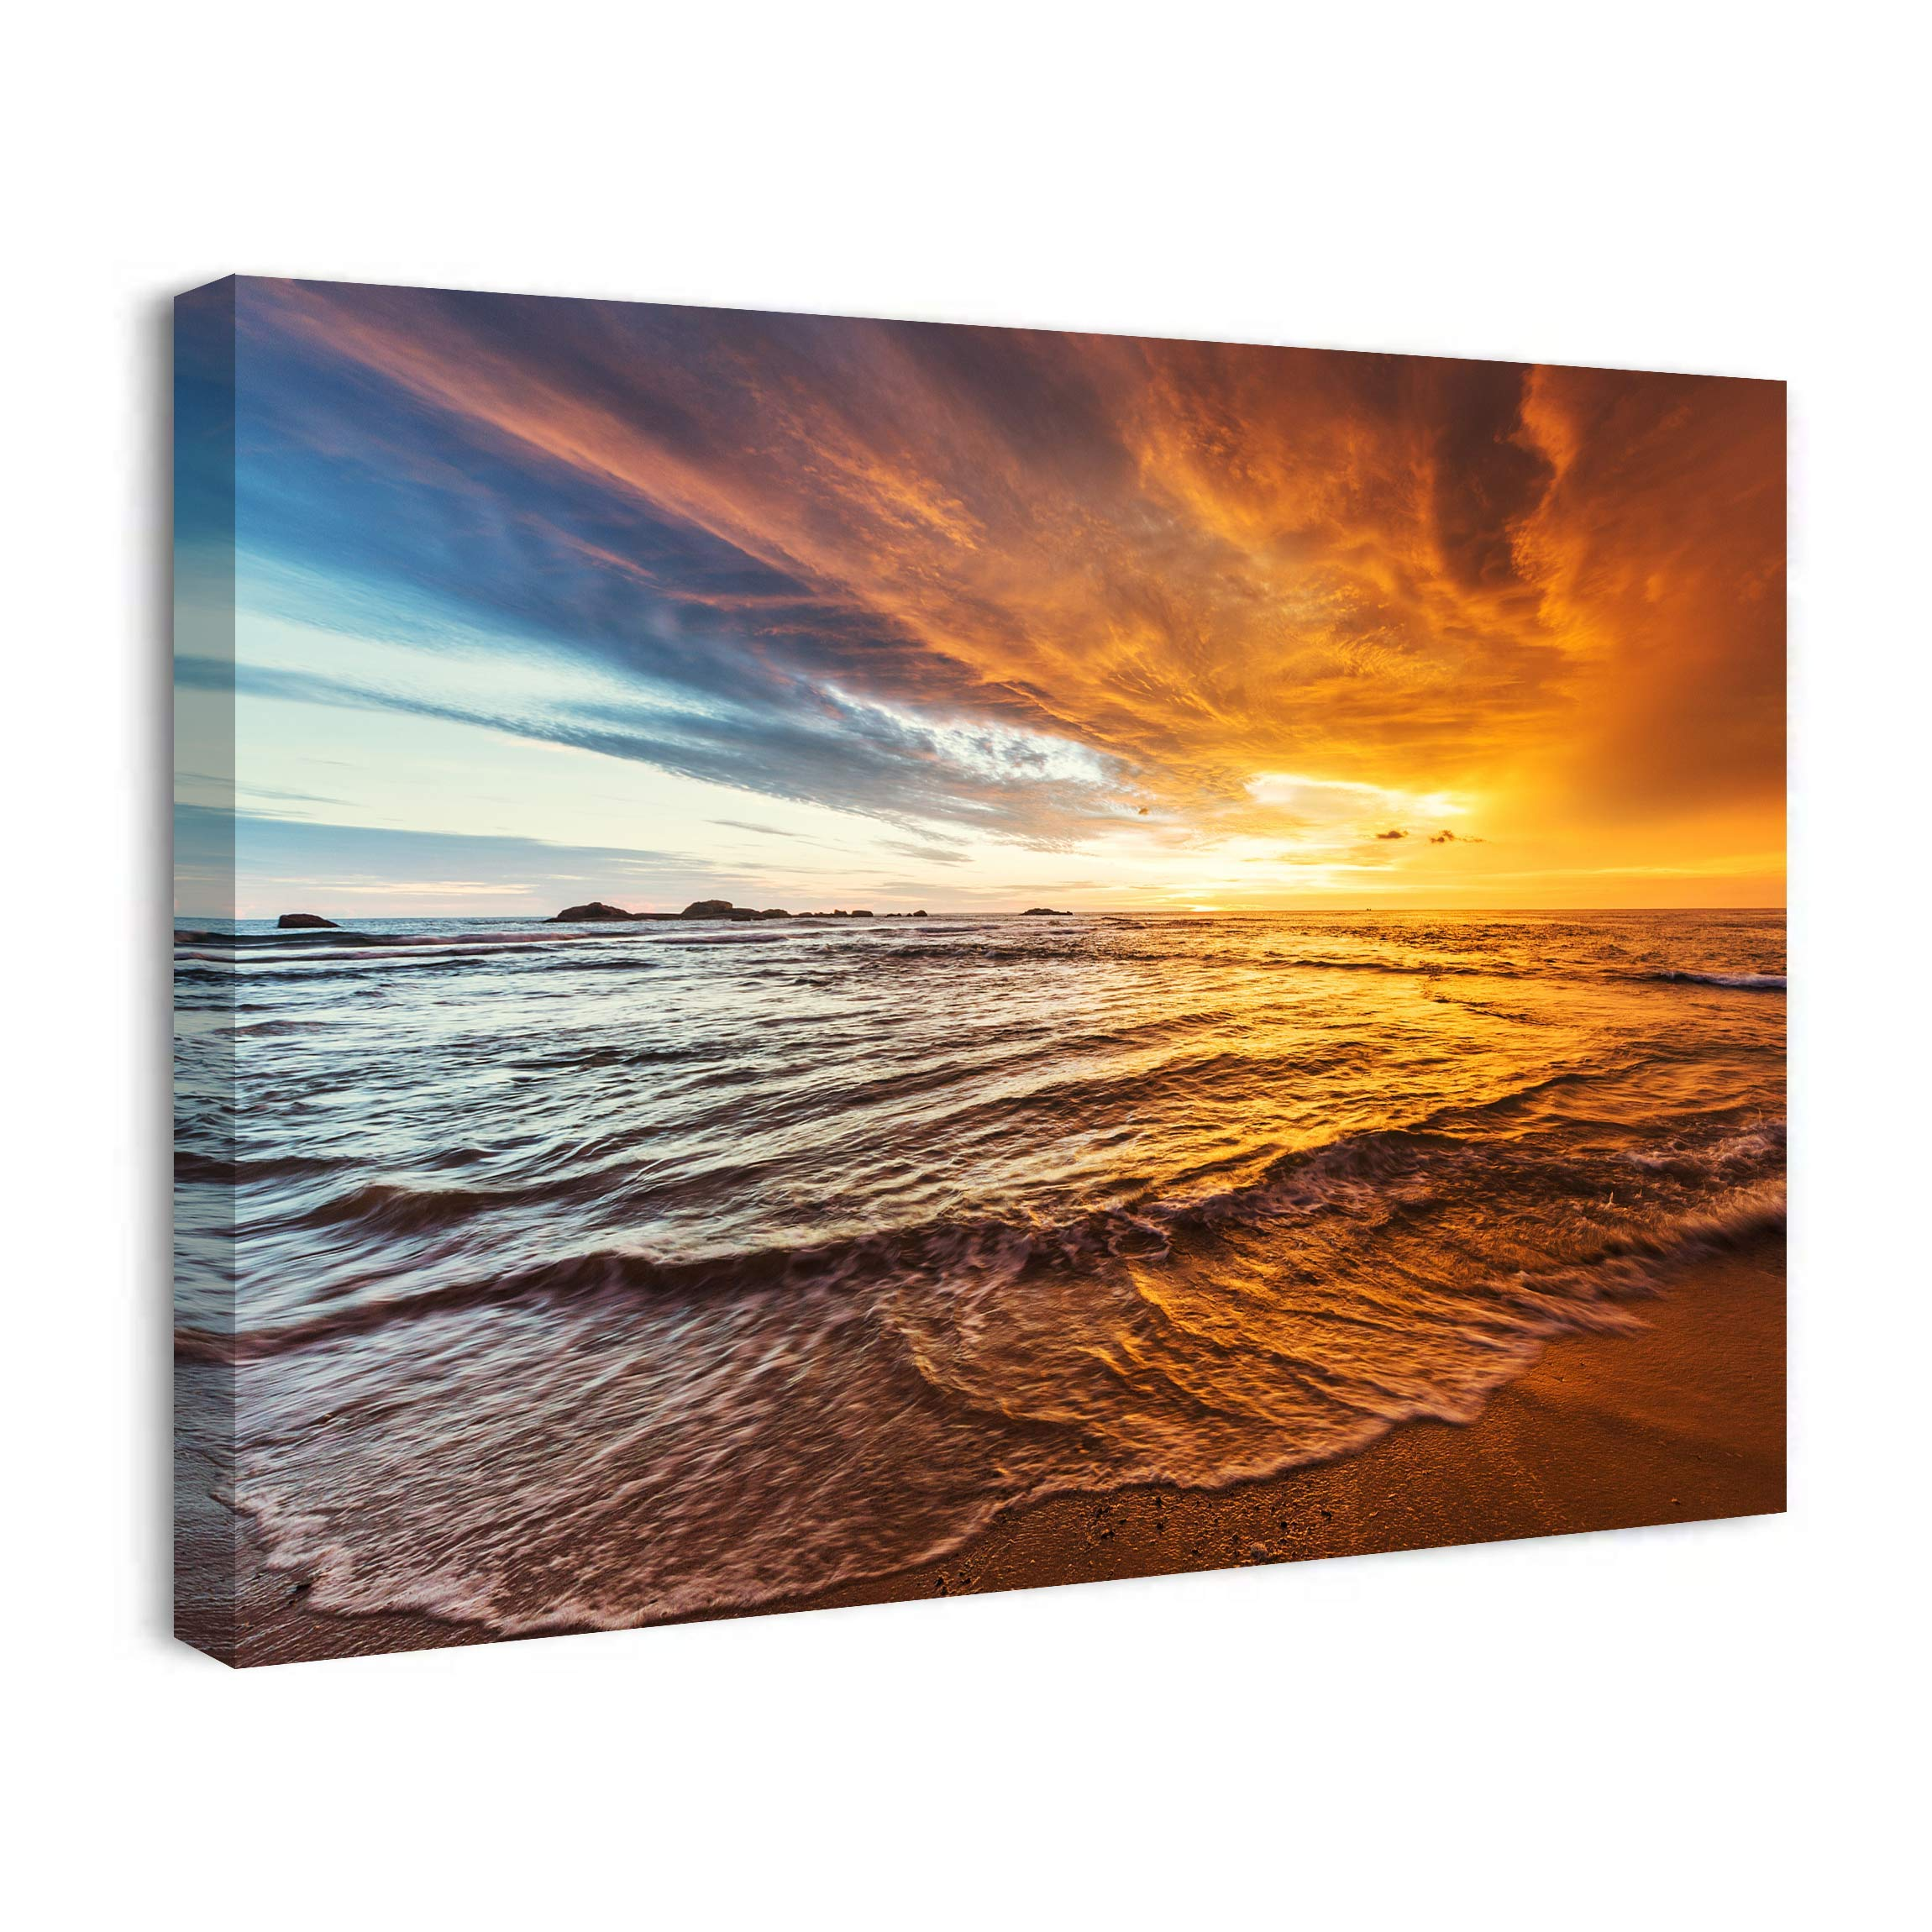 SEVLITTT Sunset Ocean Beach Paintings for Living Room Bedroom Blue Sea On